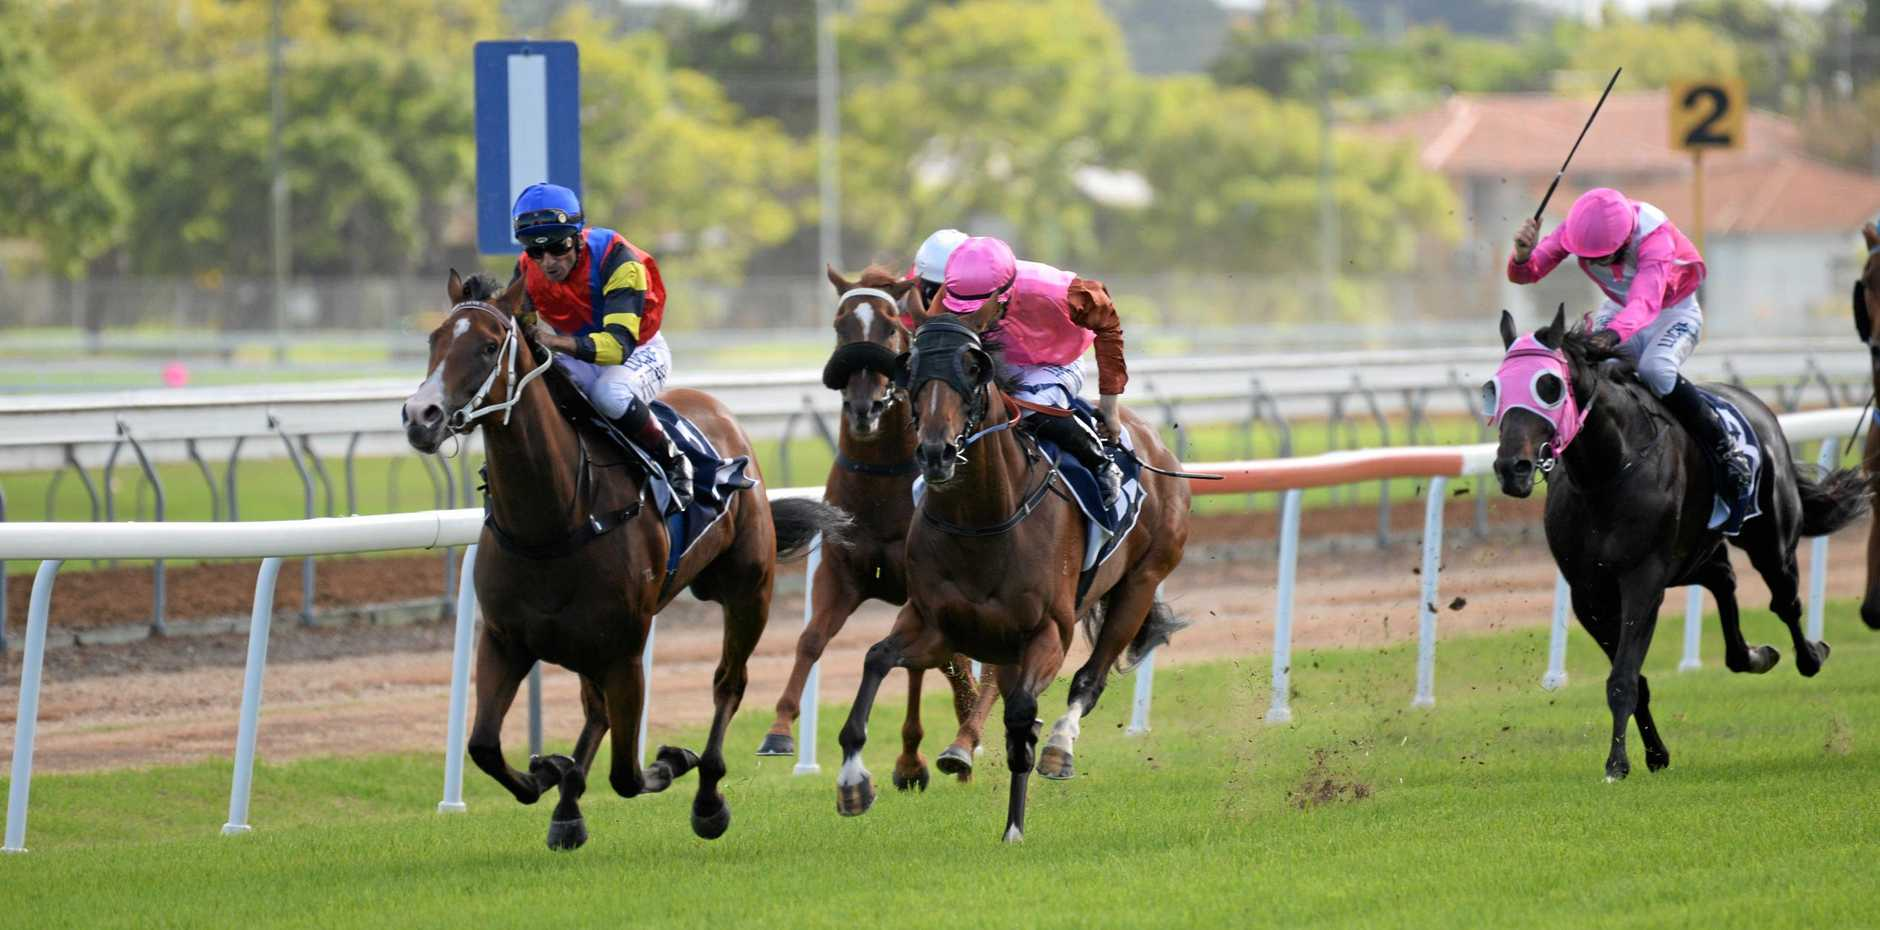 Brisbane jockey Robbie Fradd streaks clear to win the $150,000 NRRA Country Championships qualifier on board Snitz, trained by Matt Dunn, at Clarence River Jockey Club.